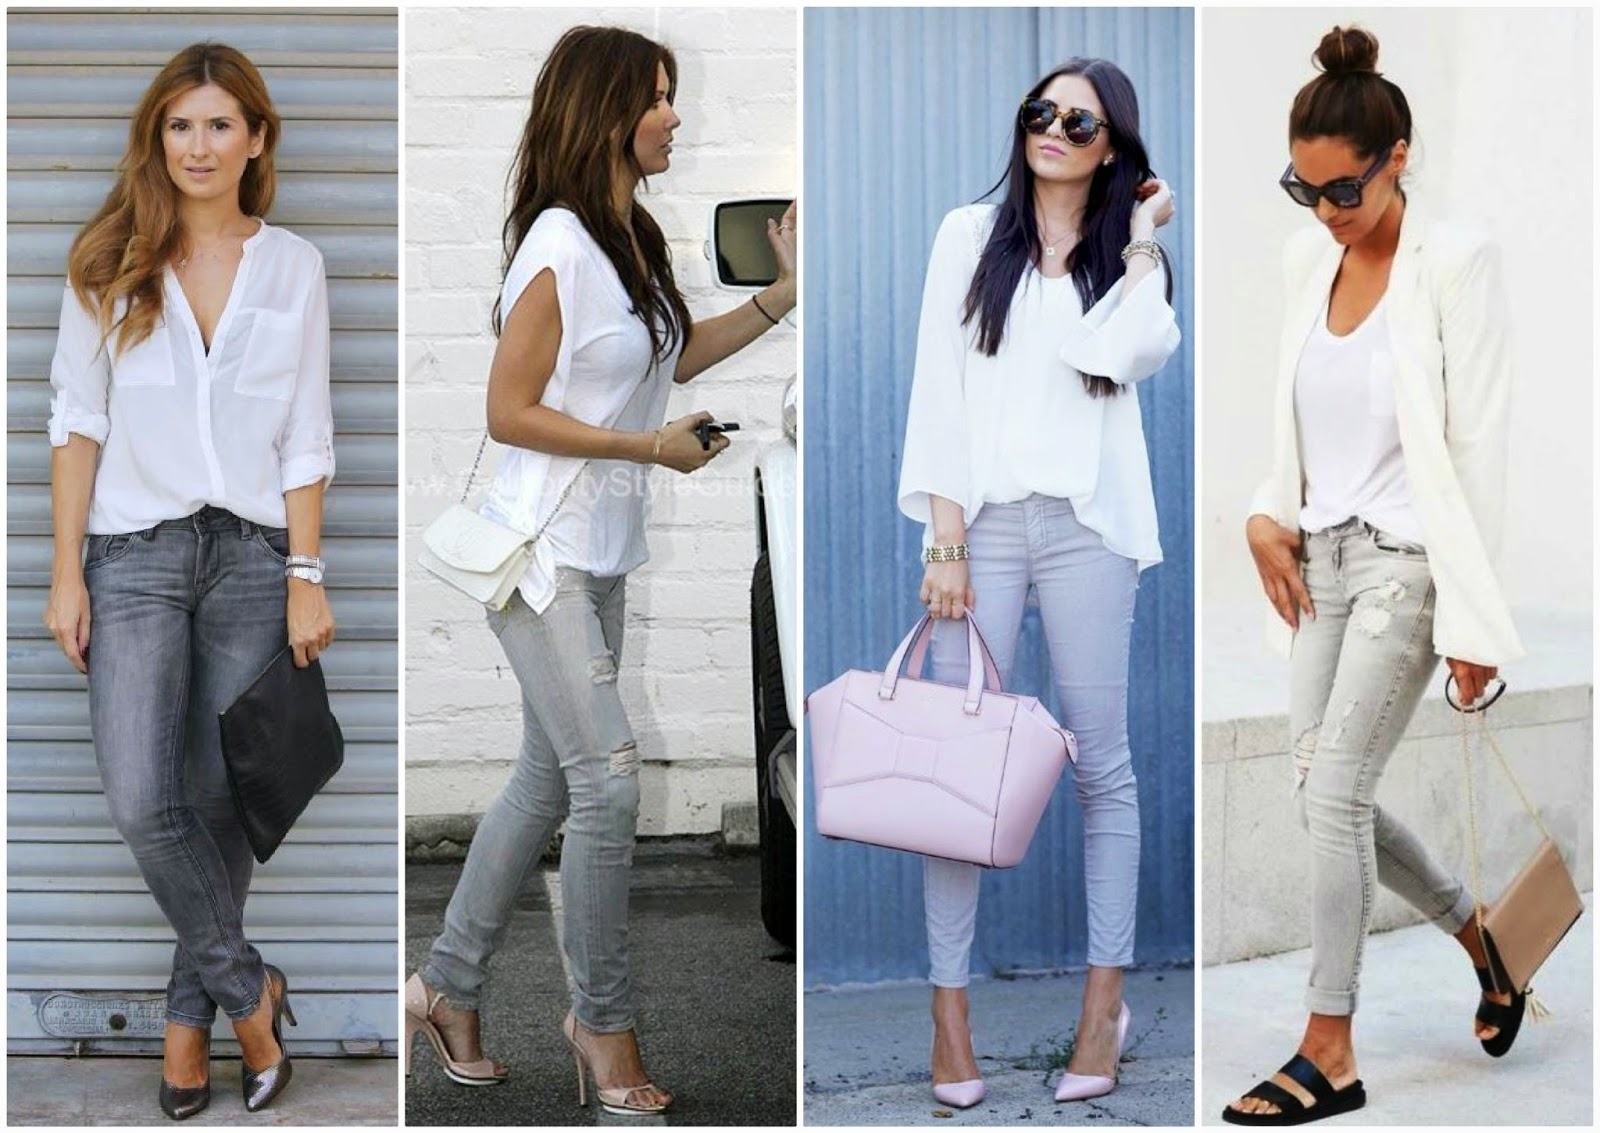 Innovative ways to wear jeans outfits ideas u2013 What Woman Needs